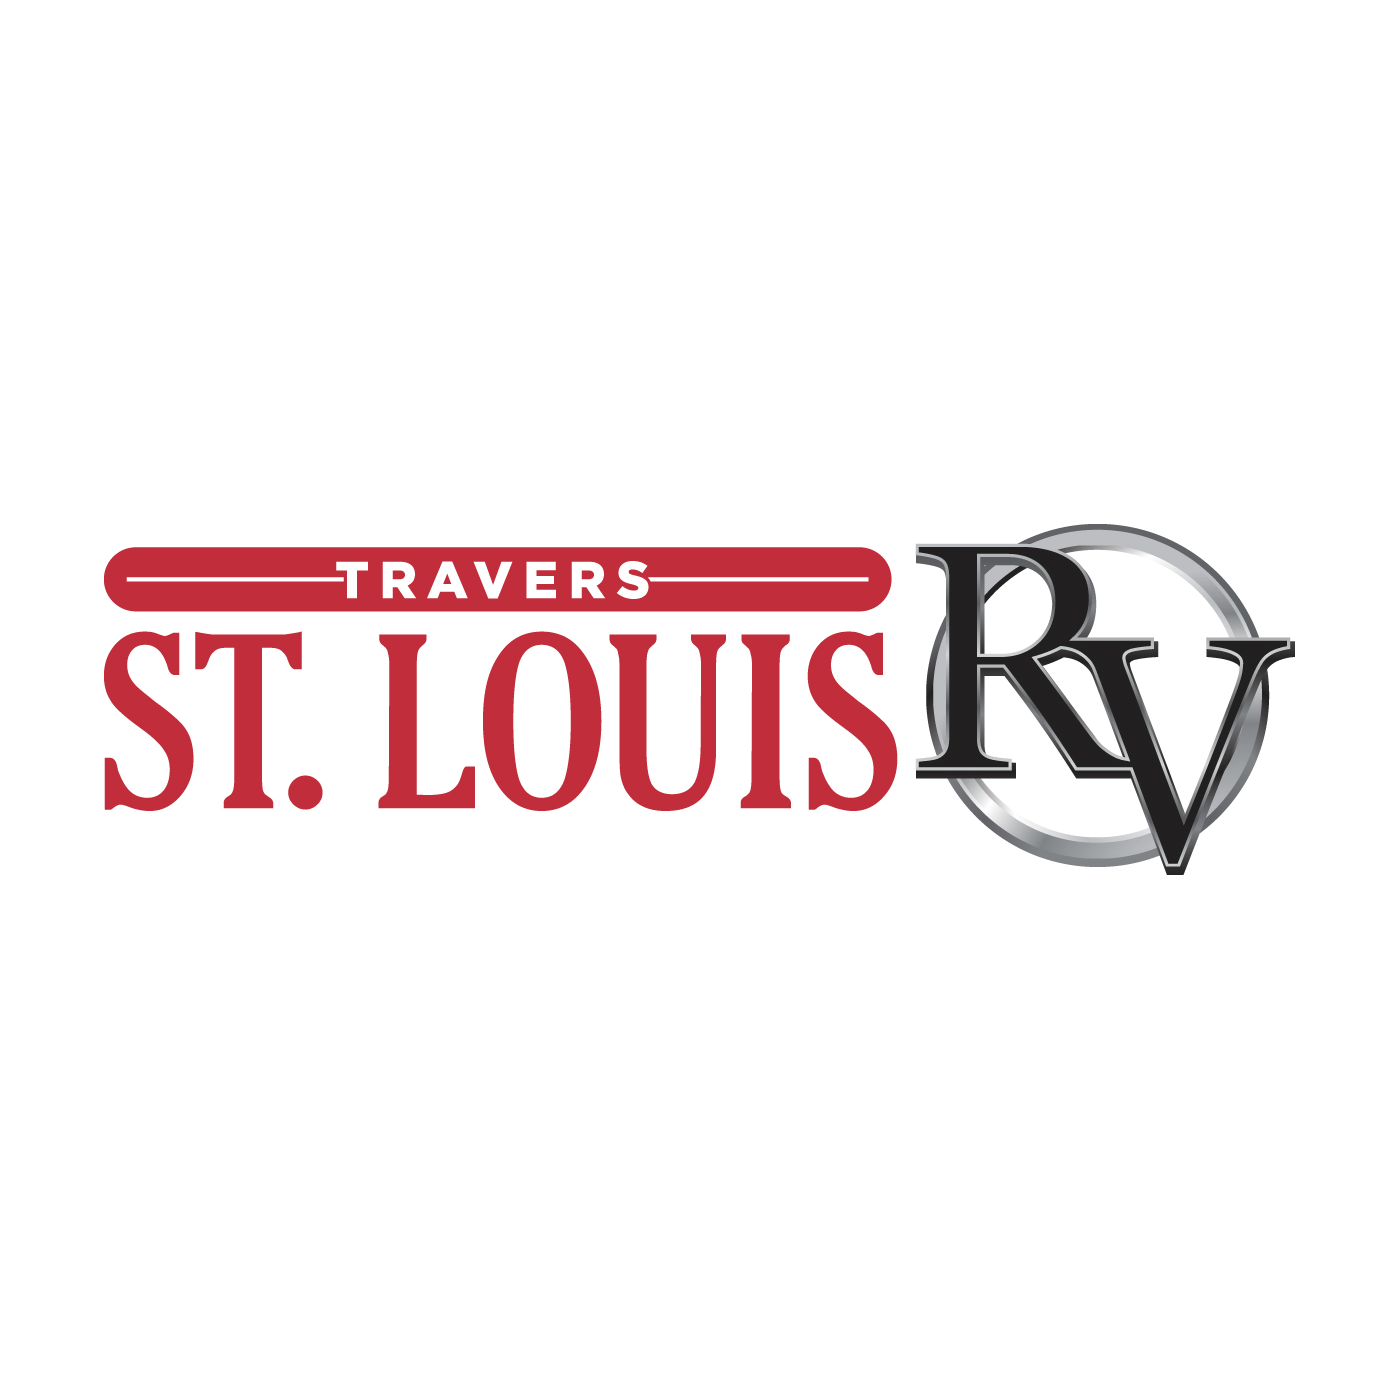 Travers St Louis RV